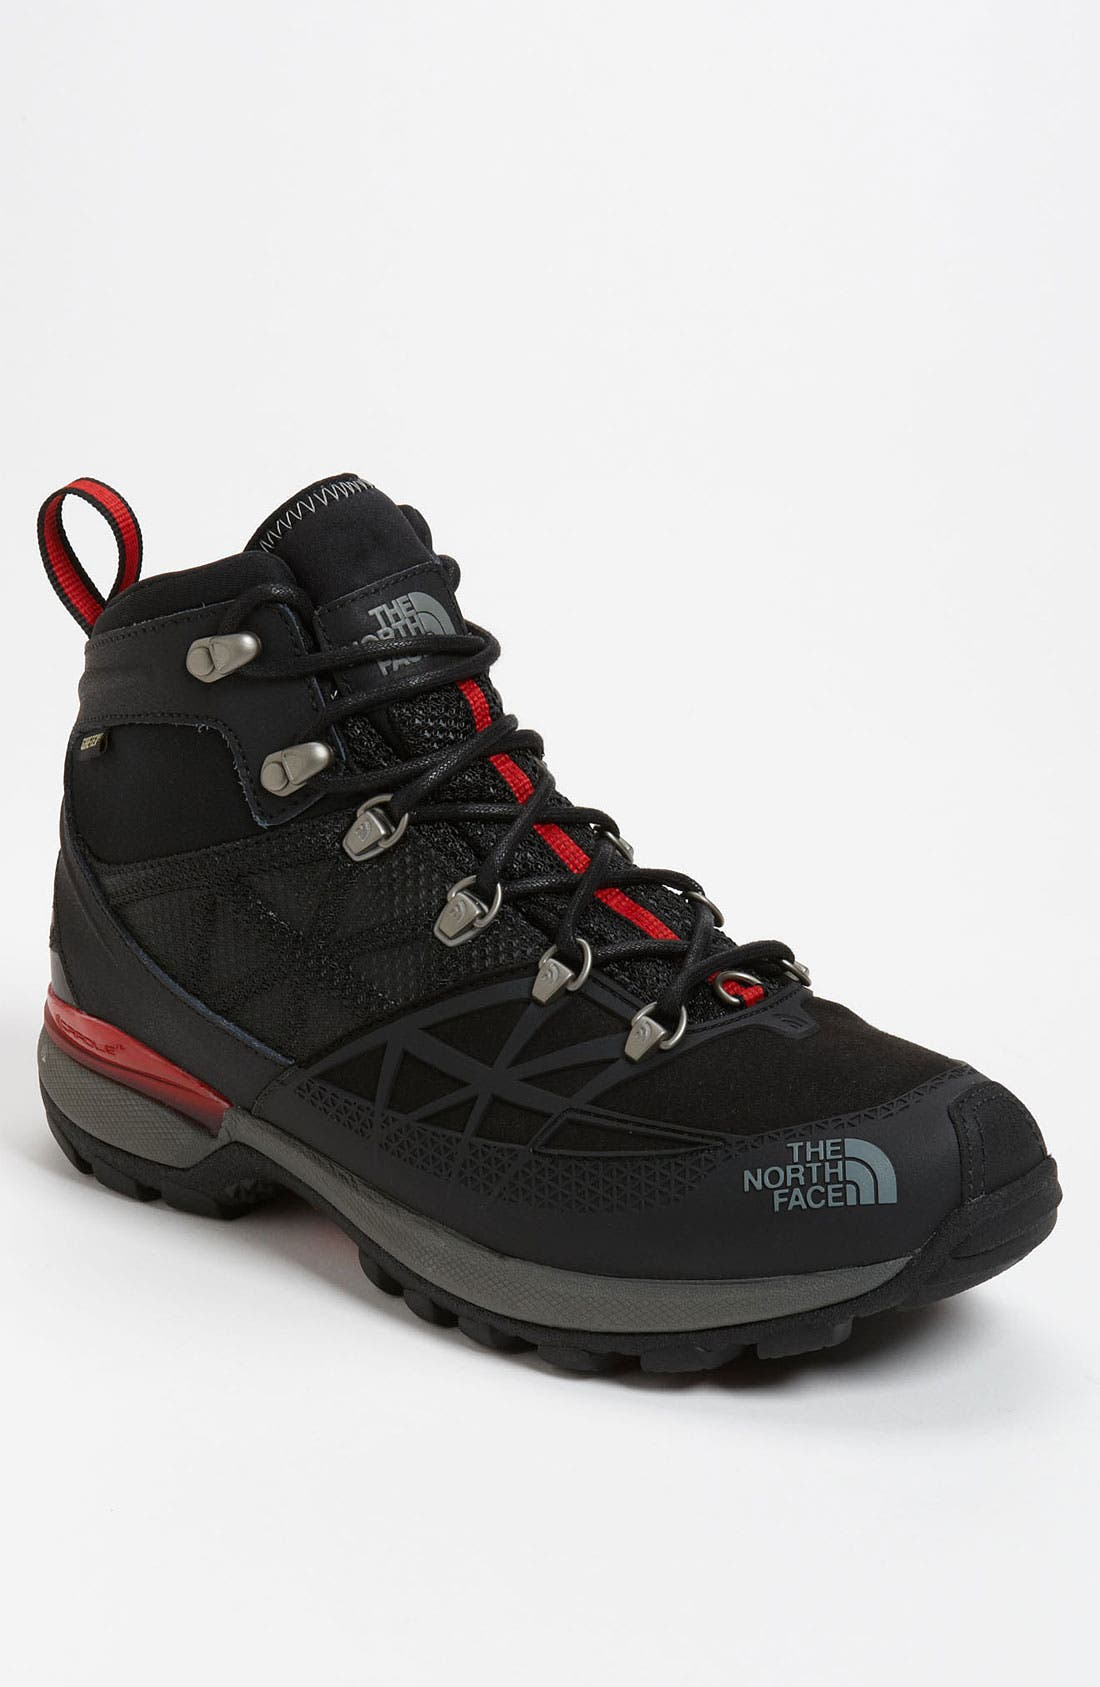 Alternate Image 1 Selected - The North Face 'Iceflare Mid GTX' Boot (Online Only)